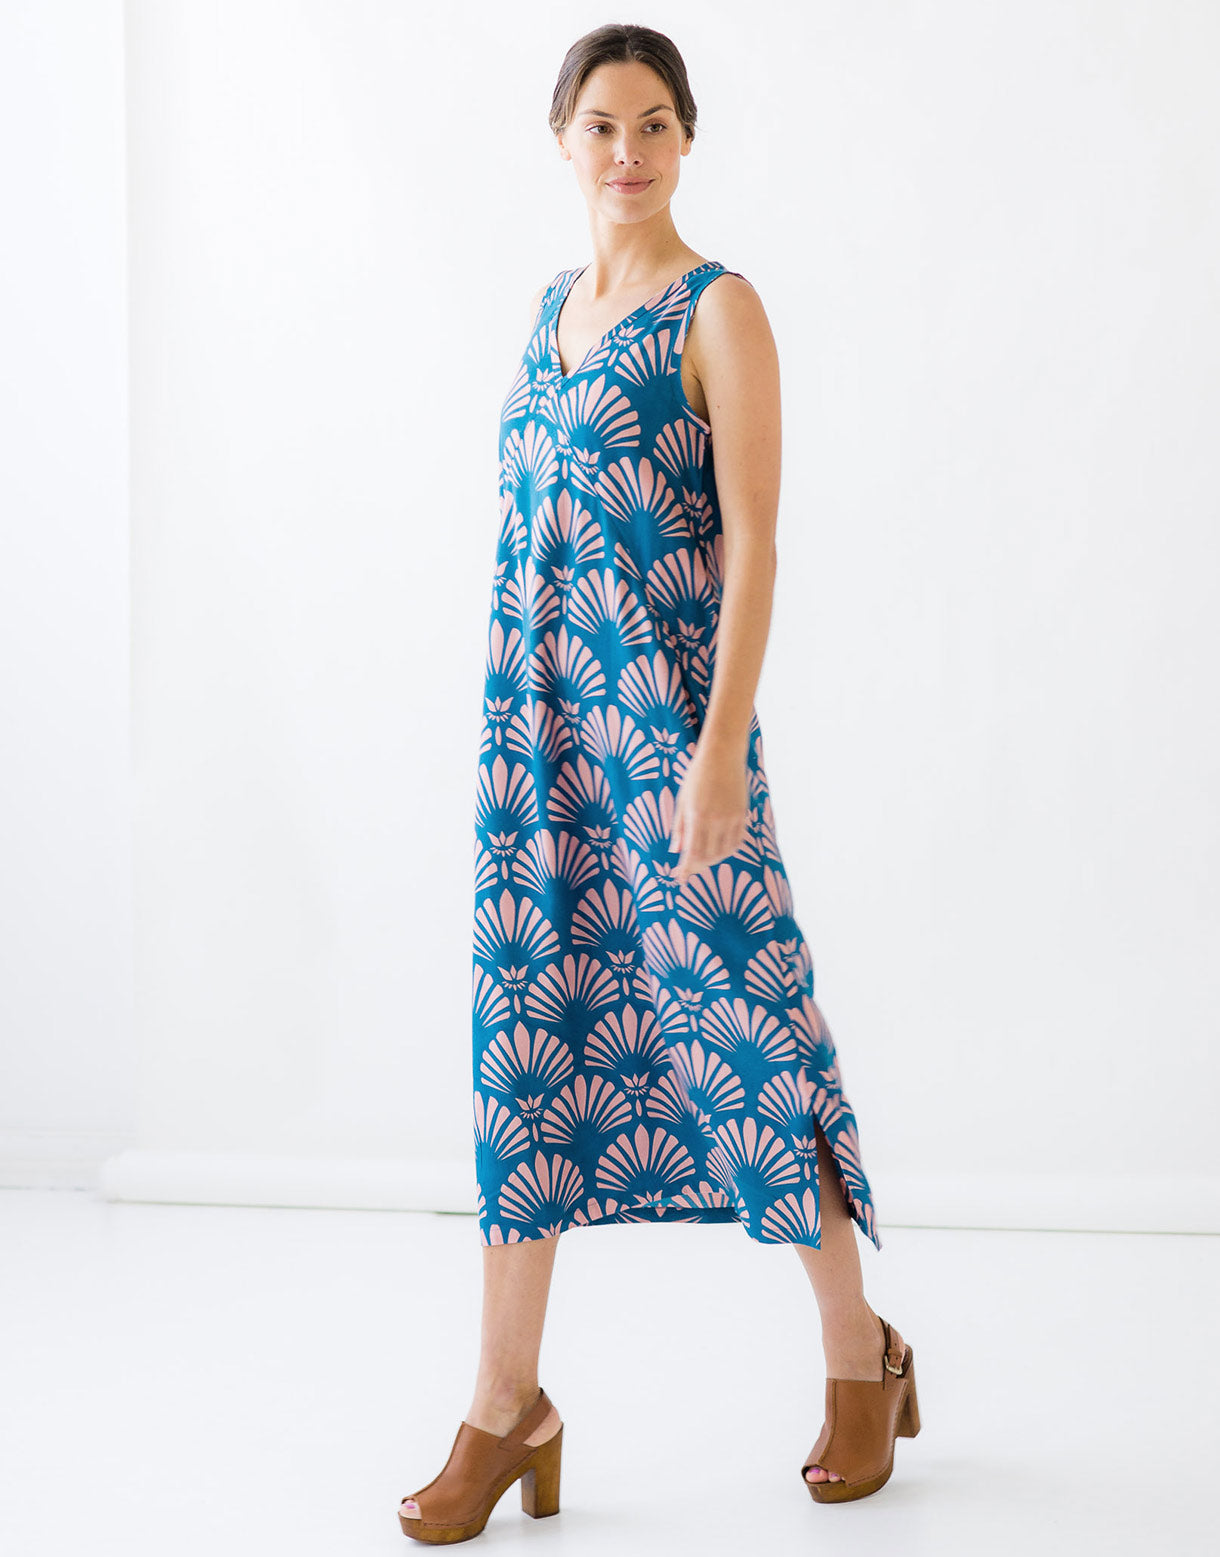 Ziggy Dress in Fantail *sustainable viscose